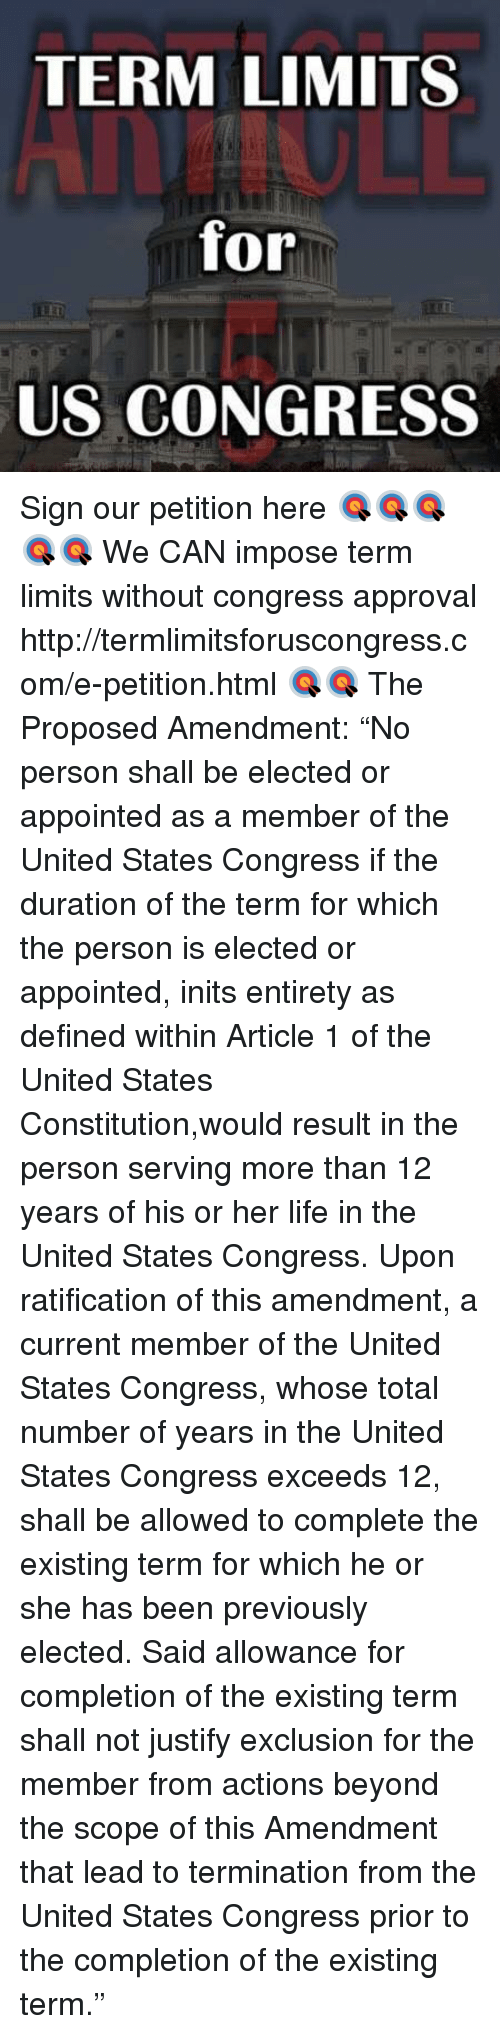 """Life, Memes, and Constitution: TERM LIMITS  for  LED  US CONGRESS Sign our petition here 🎯🎯🎯🎯🎯 We CAN impose term limits without congress approval http://termlimitsforuscongress.com/e-petition.html 🎯🎯  The Proposed Amendment:  """"No person shall be elected or appointed as a member of the United States Congress if the duration of the term for which the person is elected or appointed, inits entirety as defined within Article 1 of the United States Constitution,would result in the person serving more than 12 years of his or her life in the United States Congress.  Upon ratification of this amendment, a current member of the United States Congress, whose total number of years in the United States Congress exceeds 12, shall be allowed to complete the existing term for which he or she has been previously elected. Said allowance for completion of the existing term shall not justify exclusion for the member from actions beyond the scope of this Amendment that lead to termination from the United States Congress prior to the completion of the existing term."""""""